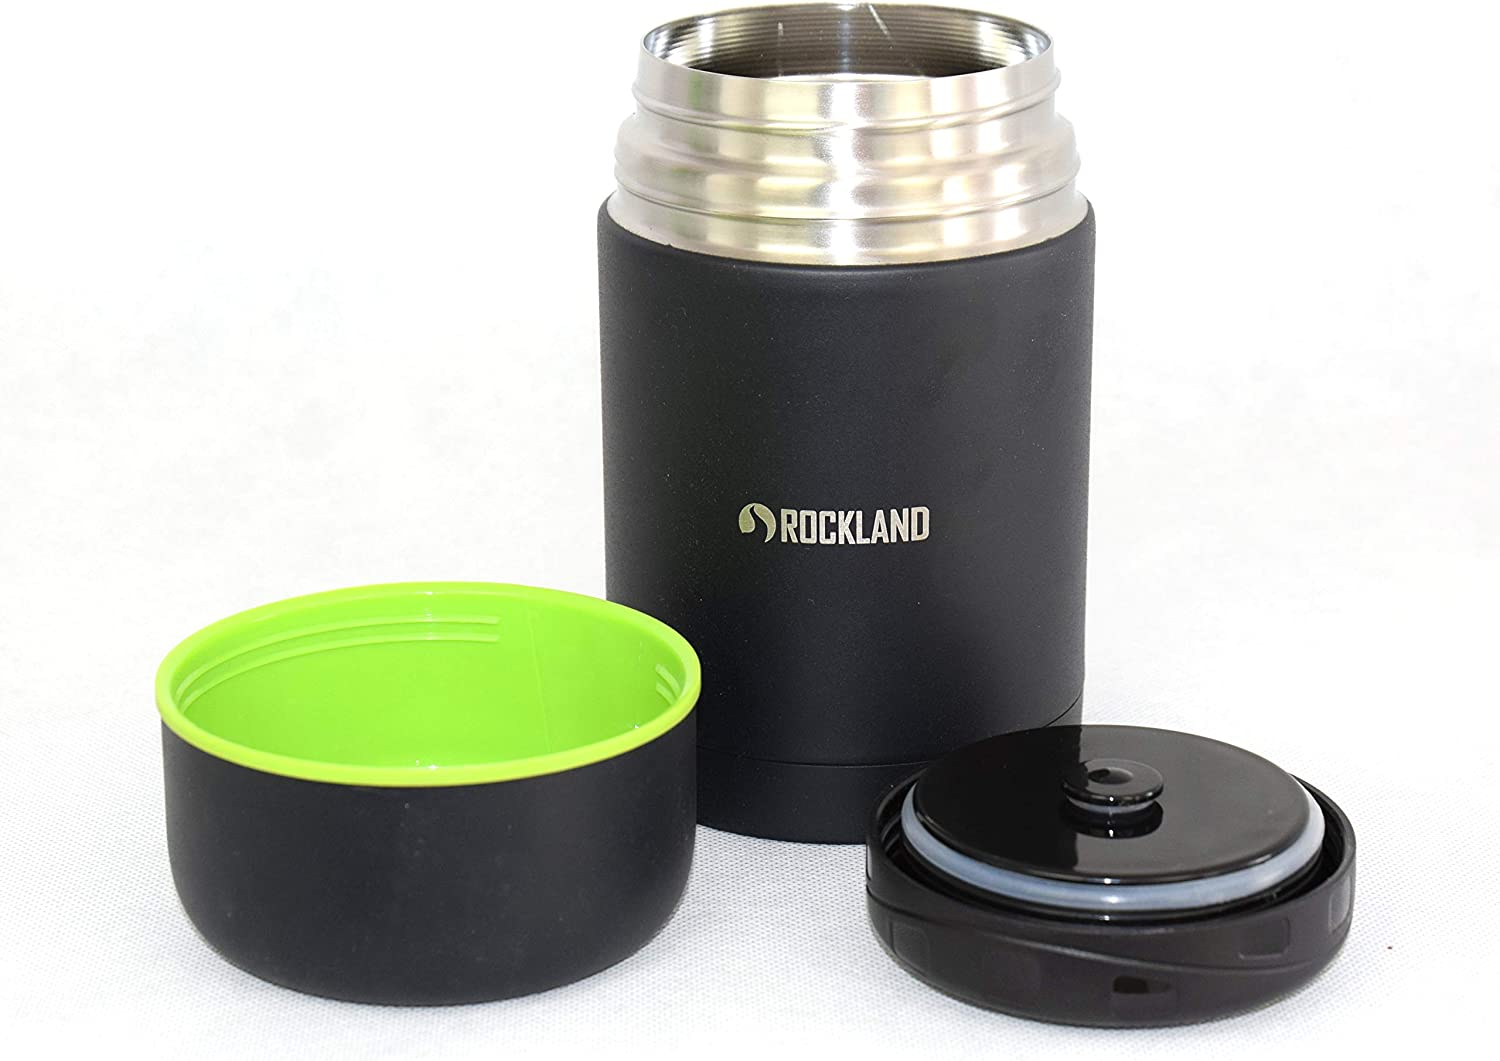 Food Jar for Hot Food ROCKLAND COMET 25.4 Oz Double Wall Vacuum Insulated Thermos Lunch Container Wide Mouth Easy to Clean Stainless Steel Lunch Box Travel Outdoor Camping School Office